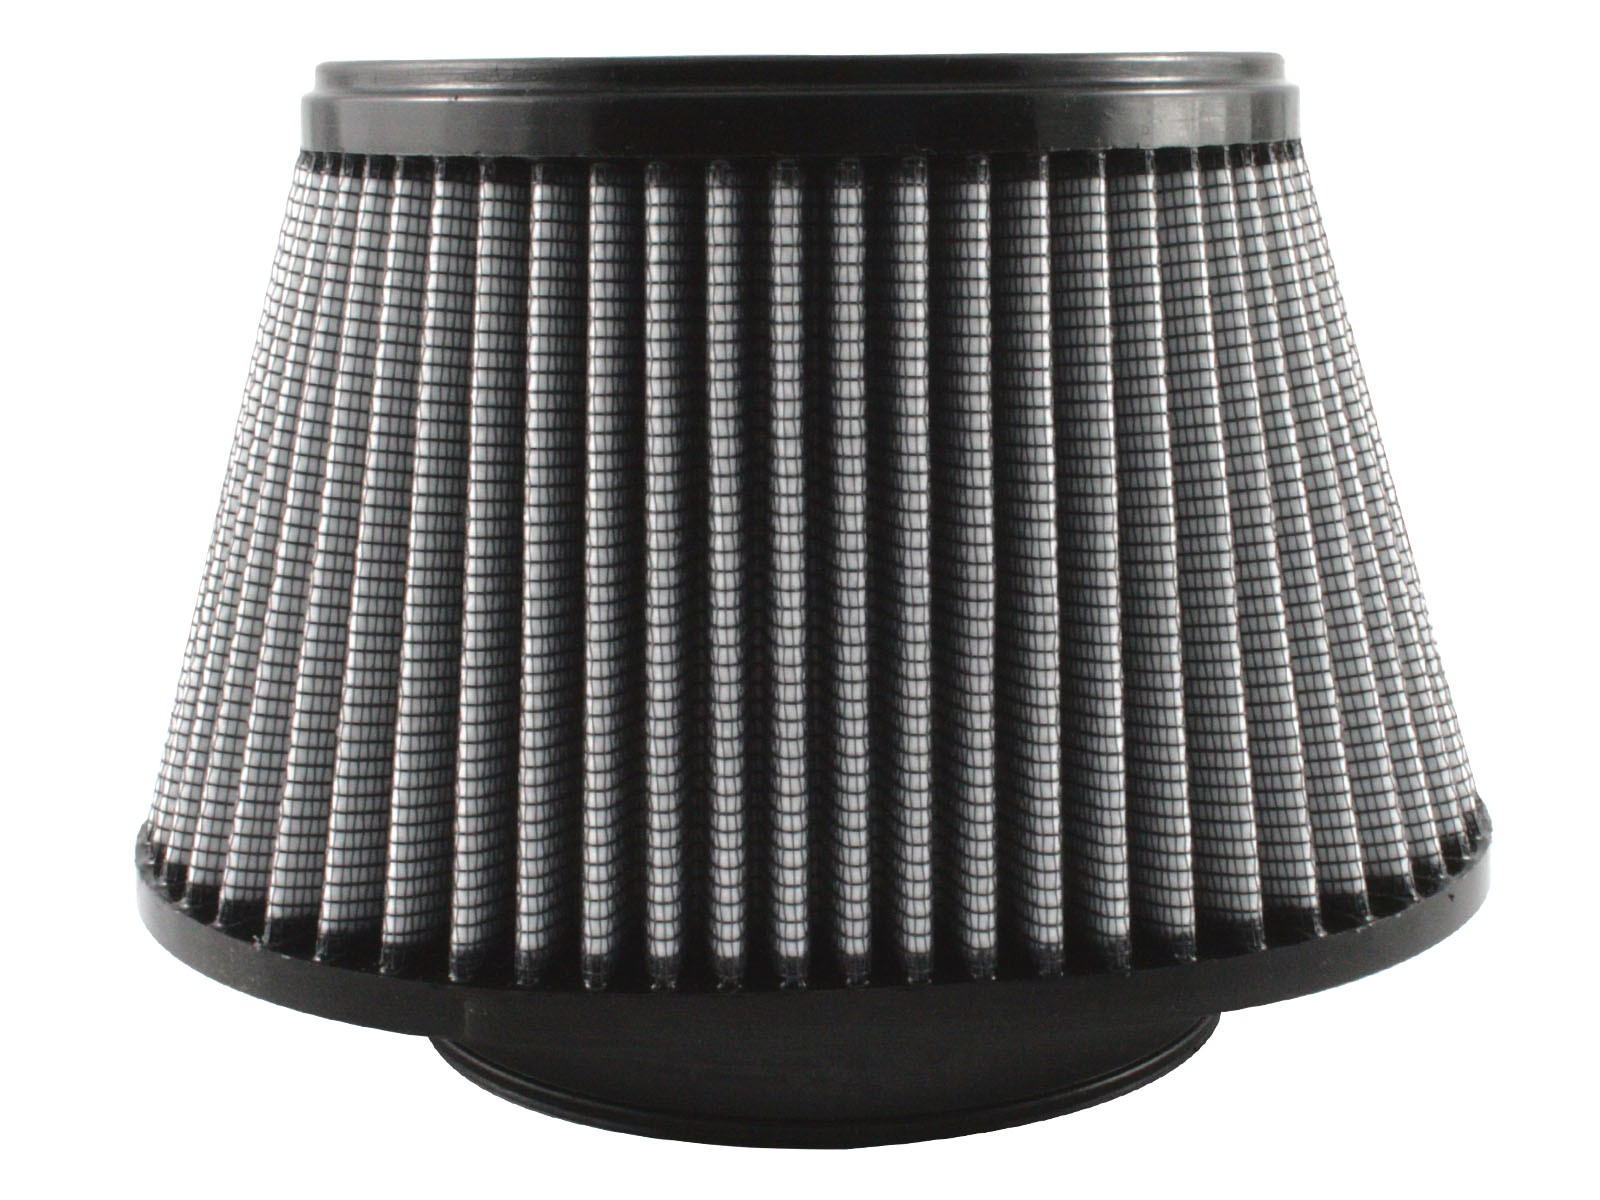 aFe POWER 21-90053 Magnum FLOW Pro DRY S Air Filter